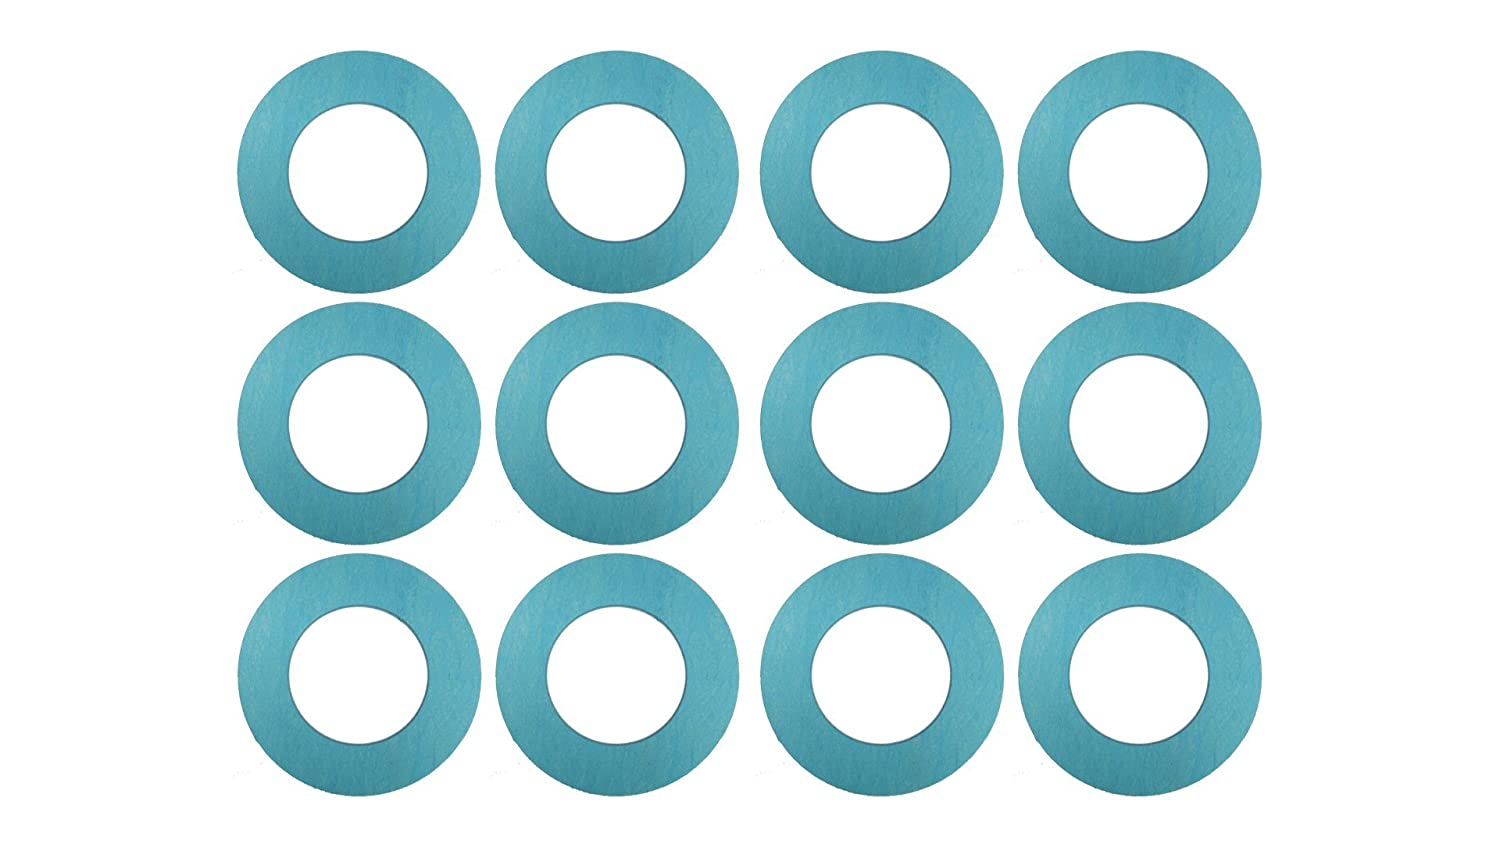 Sterling Seal CRG7106.500.062.300X50 7106 60 Durometer Ring Gasket 1//16 Thick Neoprene Rubber Pack of 50 0.84 ID 1//2 Pipe Size Pressure Class 300#